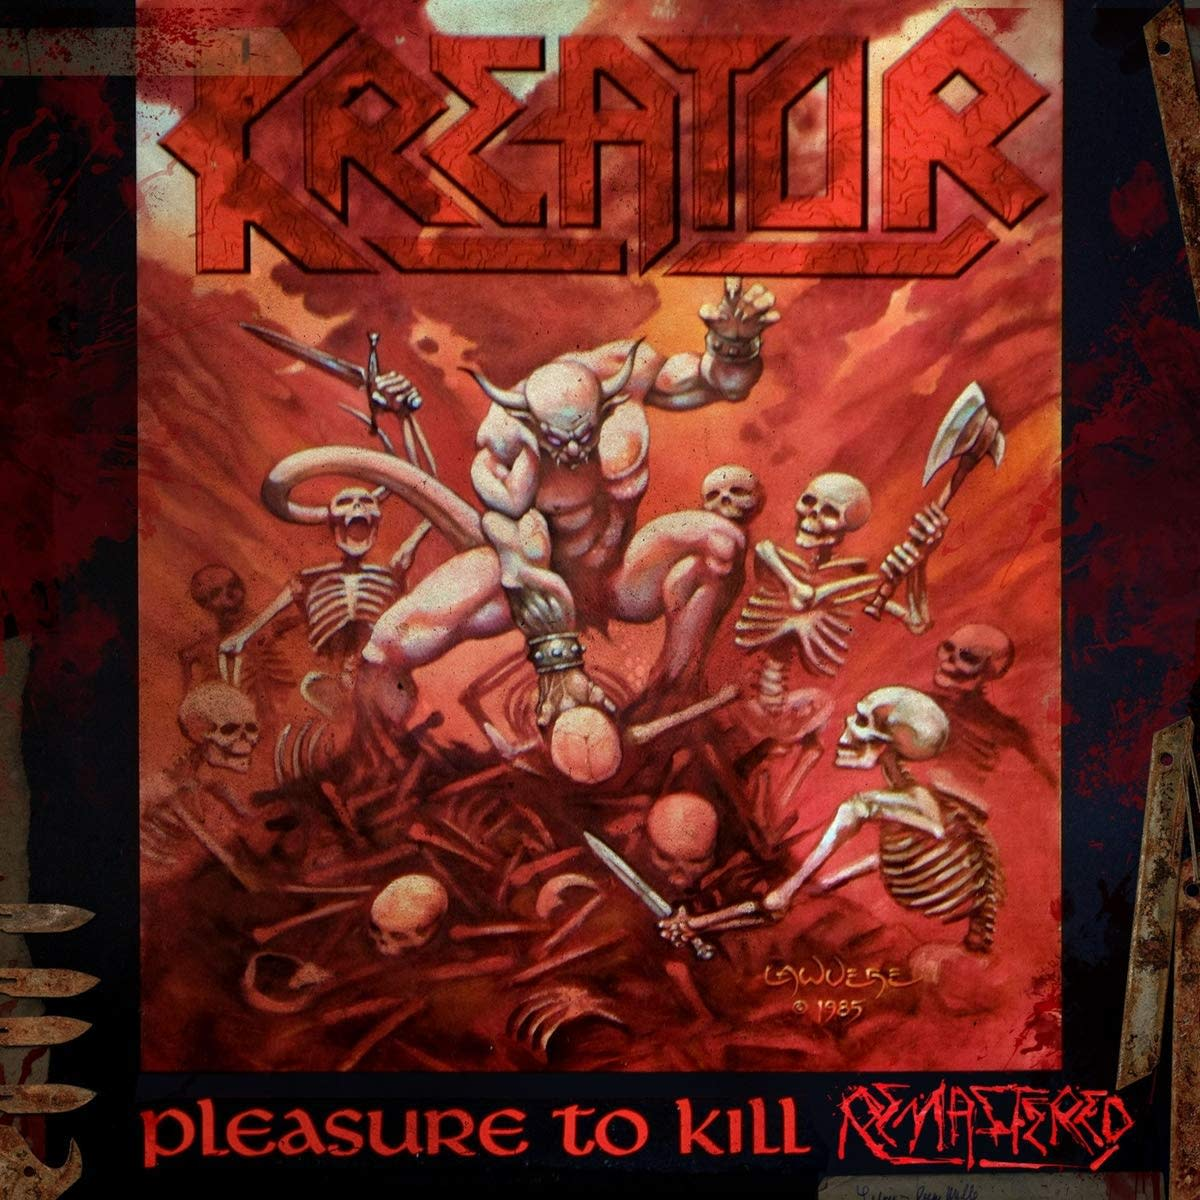 a-review-of-the-album-pleasure-to-kill-by-german-thrash-metal-band-kreator